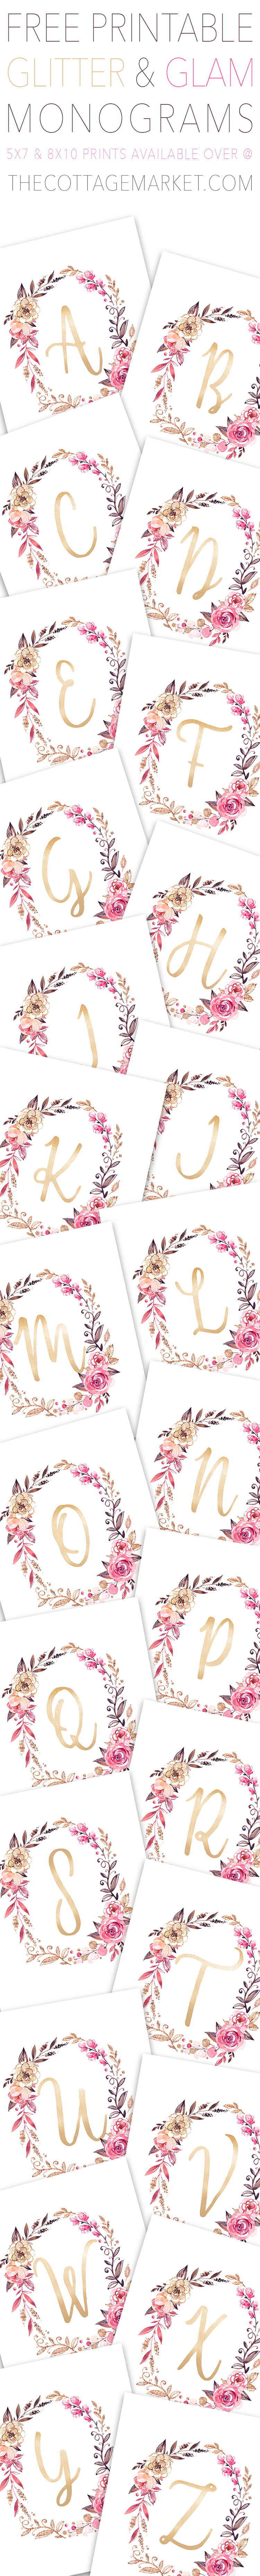 These free printable monogrammed letters are colorful and glittery.